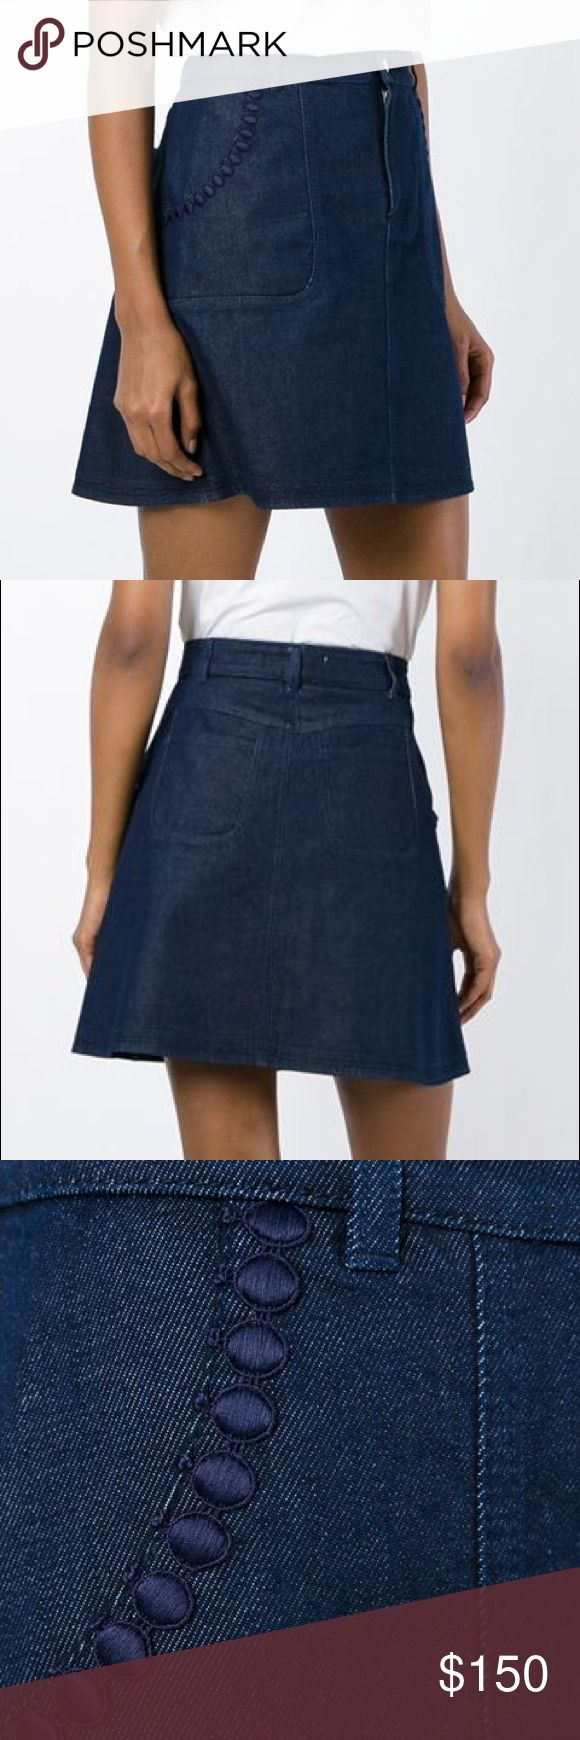 """See by Chloé Denim a line mini skirt - indigo Blue stretch cotton A-line denim skirt from See By Chloé featuring a high waist, a waistband with belt loops, a front button fastening, side pockets, embroidered details, two back patch pockets, a short length and a straight hem. Italian size 44 which is a US 12. Laying flat waist 17"""", length 18"""" See By Chloe Skirts Mini"""